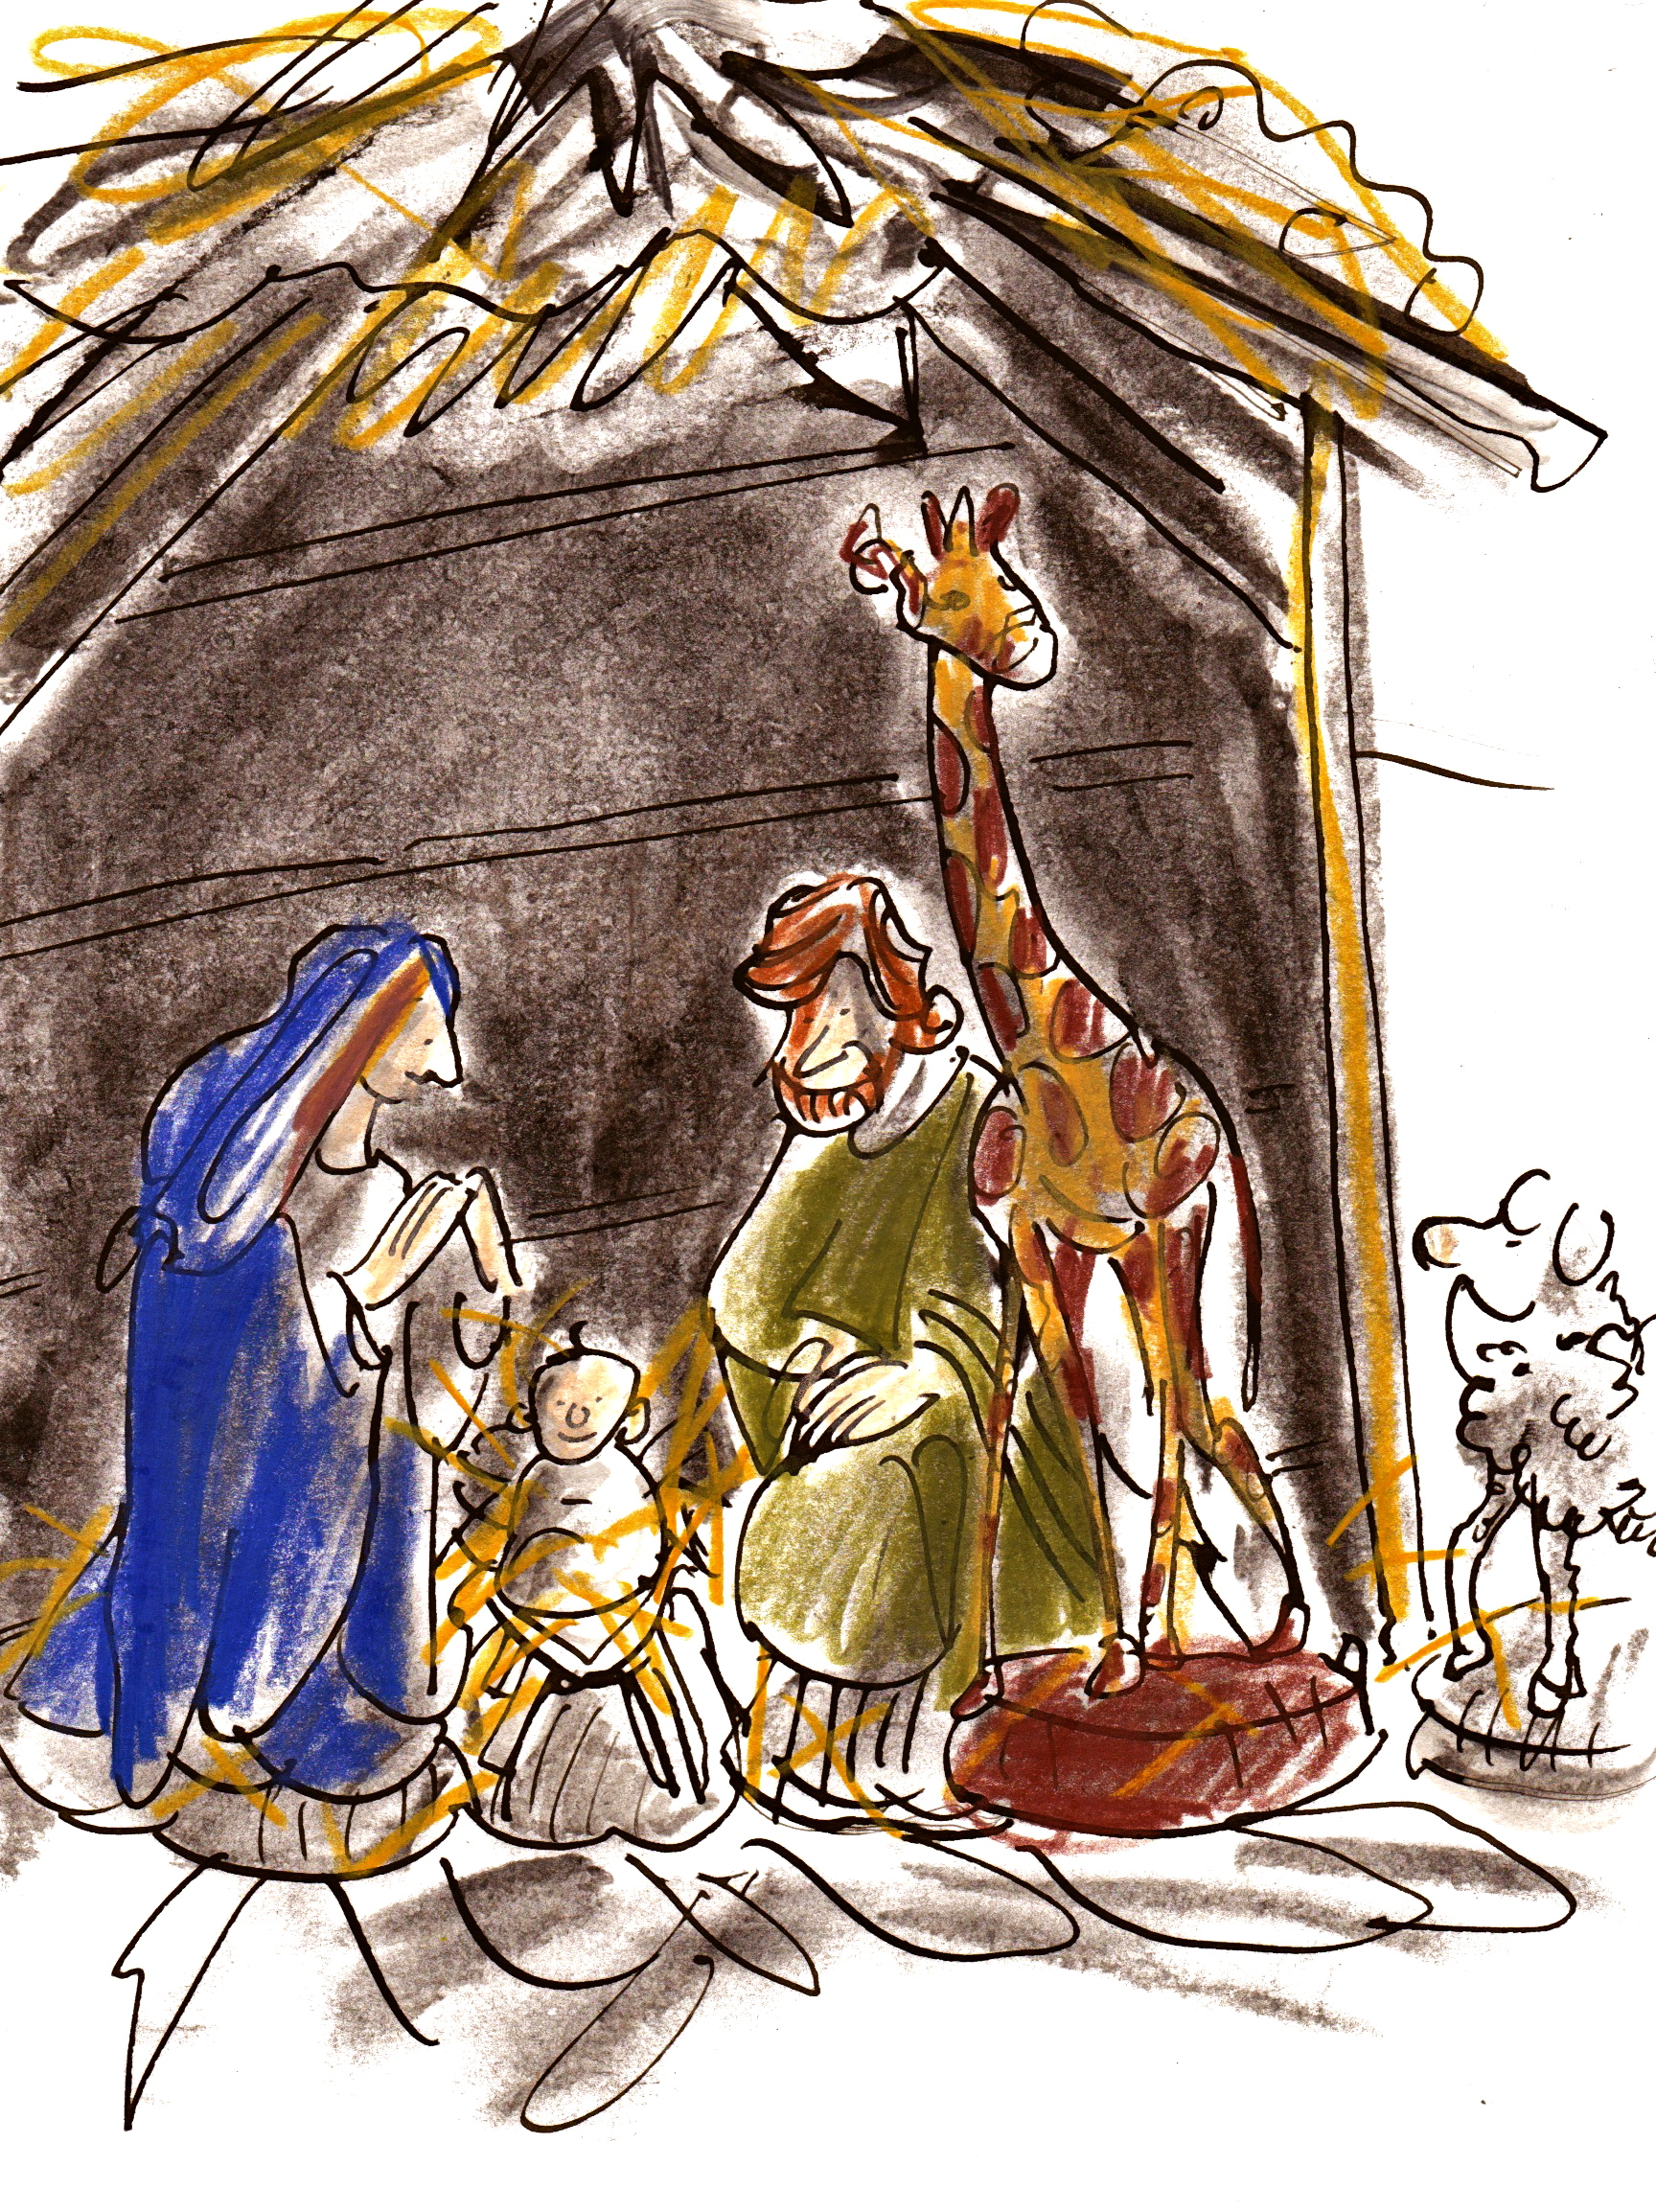 'Nativity stable' by Barbara